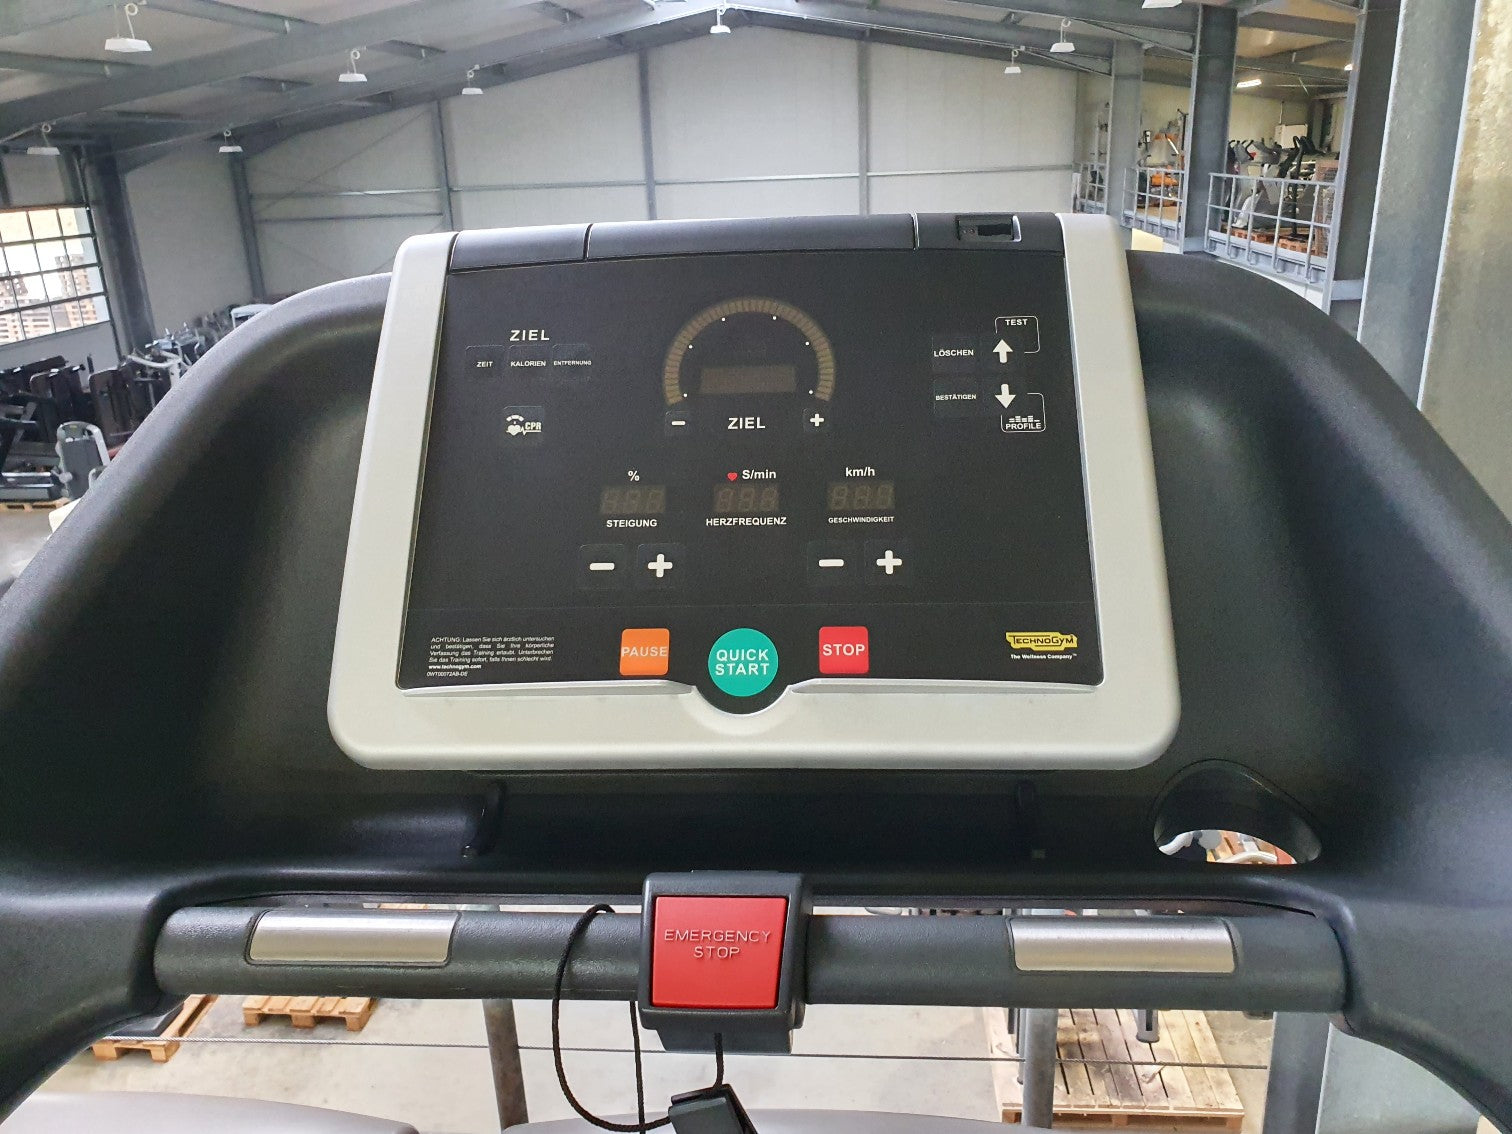 Premium TECHNOGYM Excite 500 Laufband Treadmill Fitness Studio Gym Run Laufen